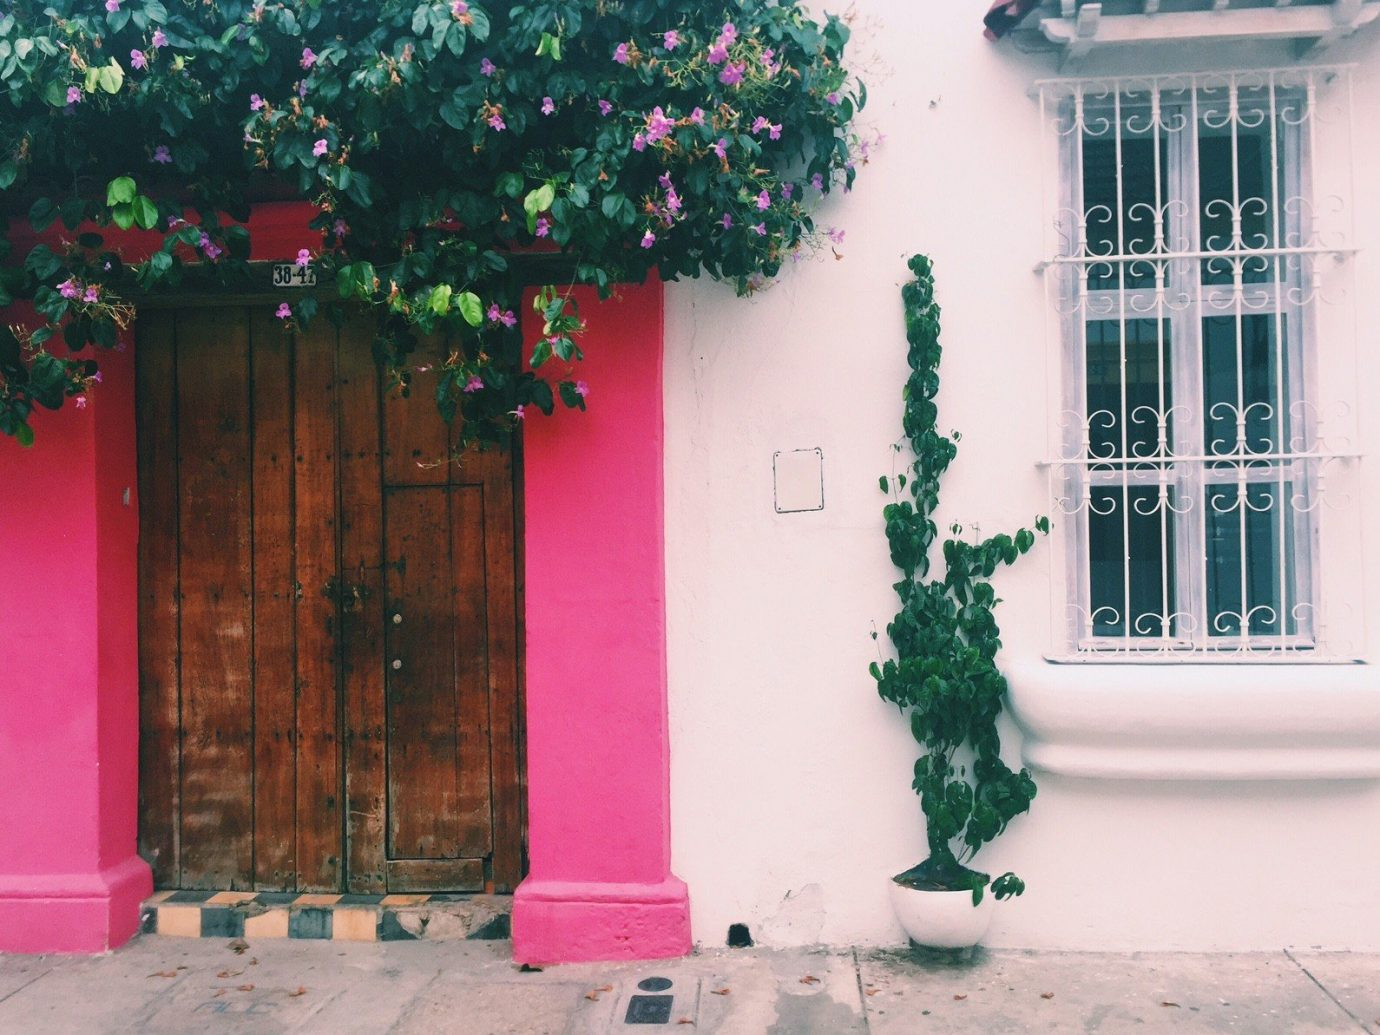 Jetsetter Guides building color red green house wall pink street home spring flower window facade interior design door porch plant painted